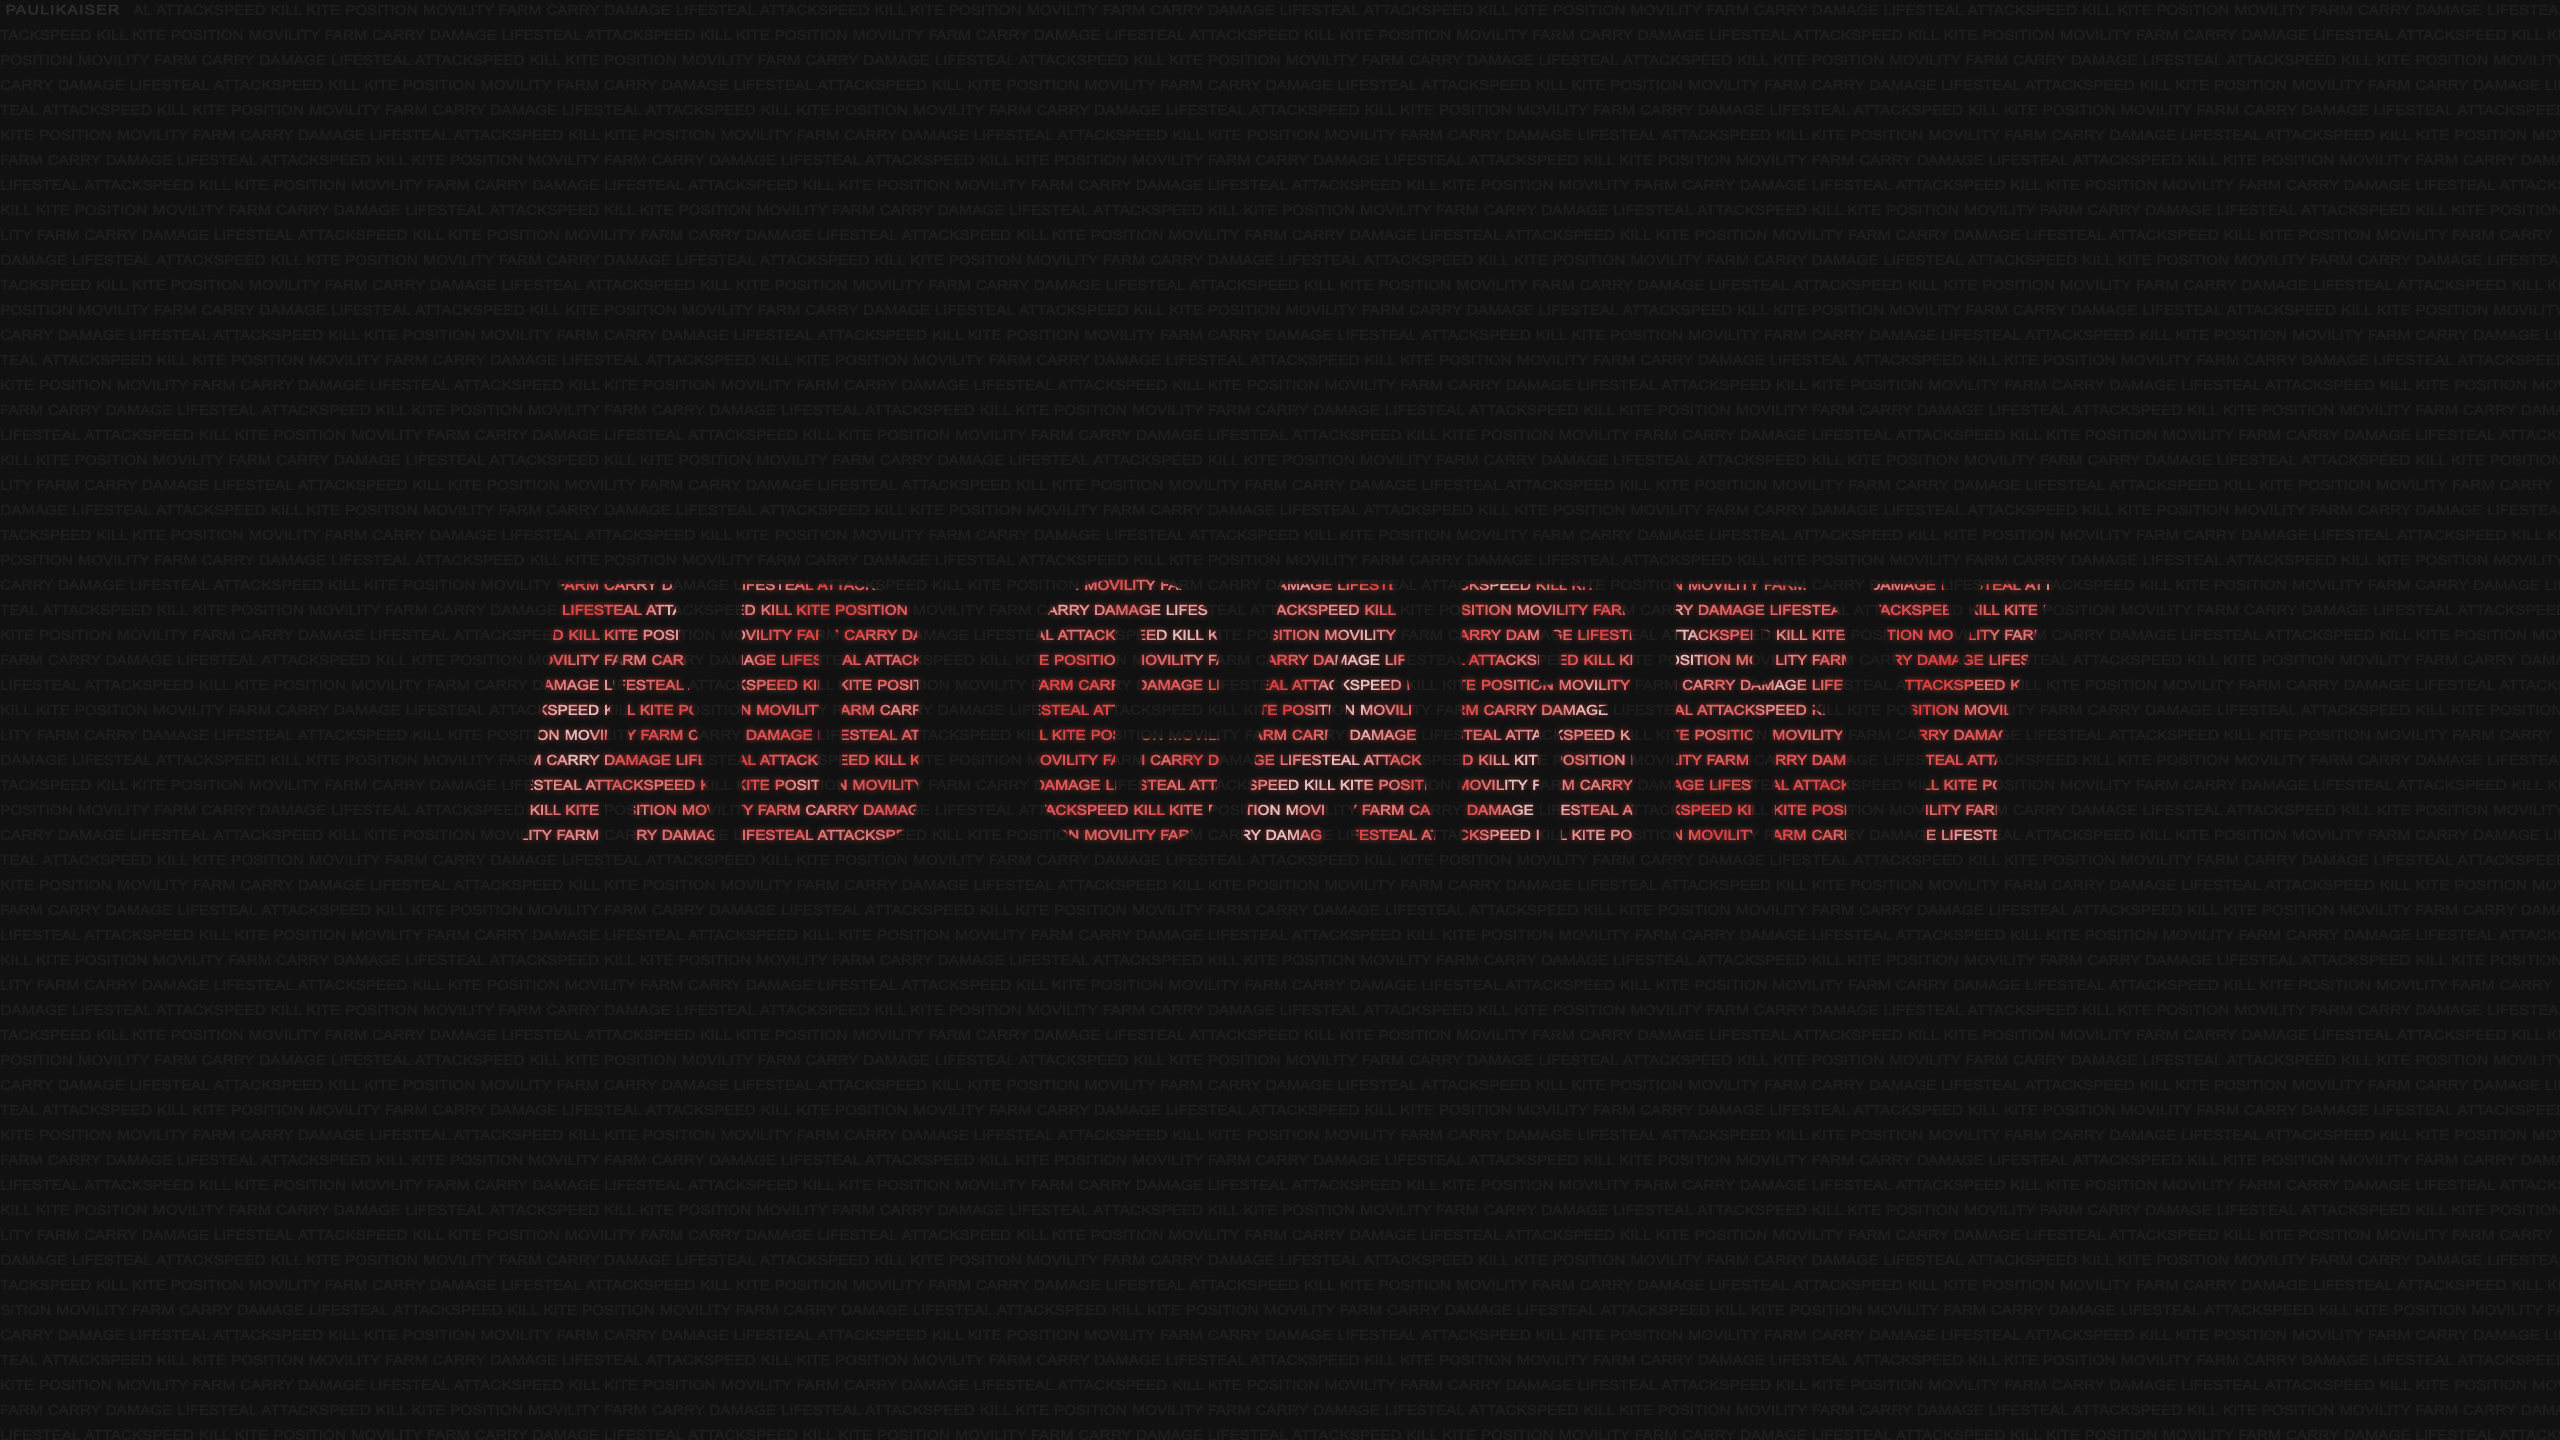 Ad Carry Typography Wallpaper by Paulikaiser on DeviantArt